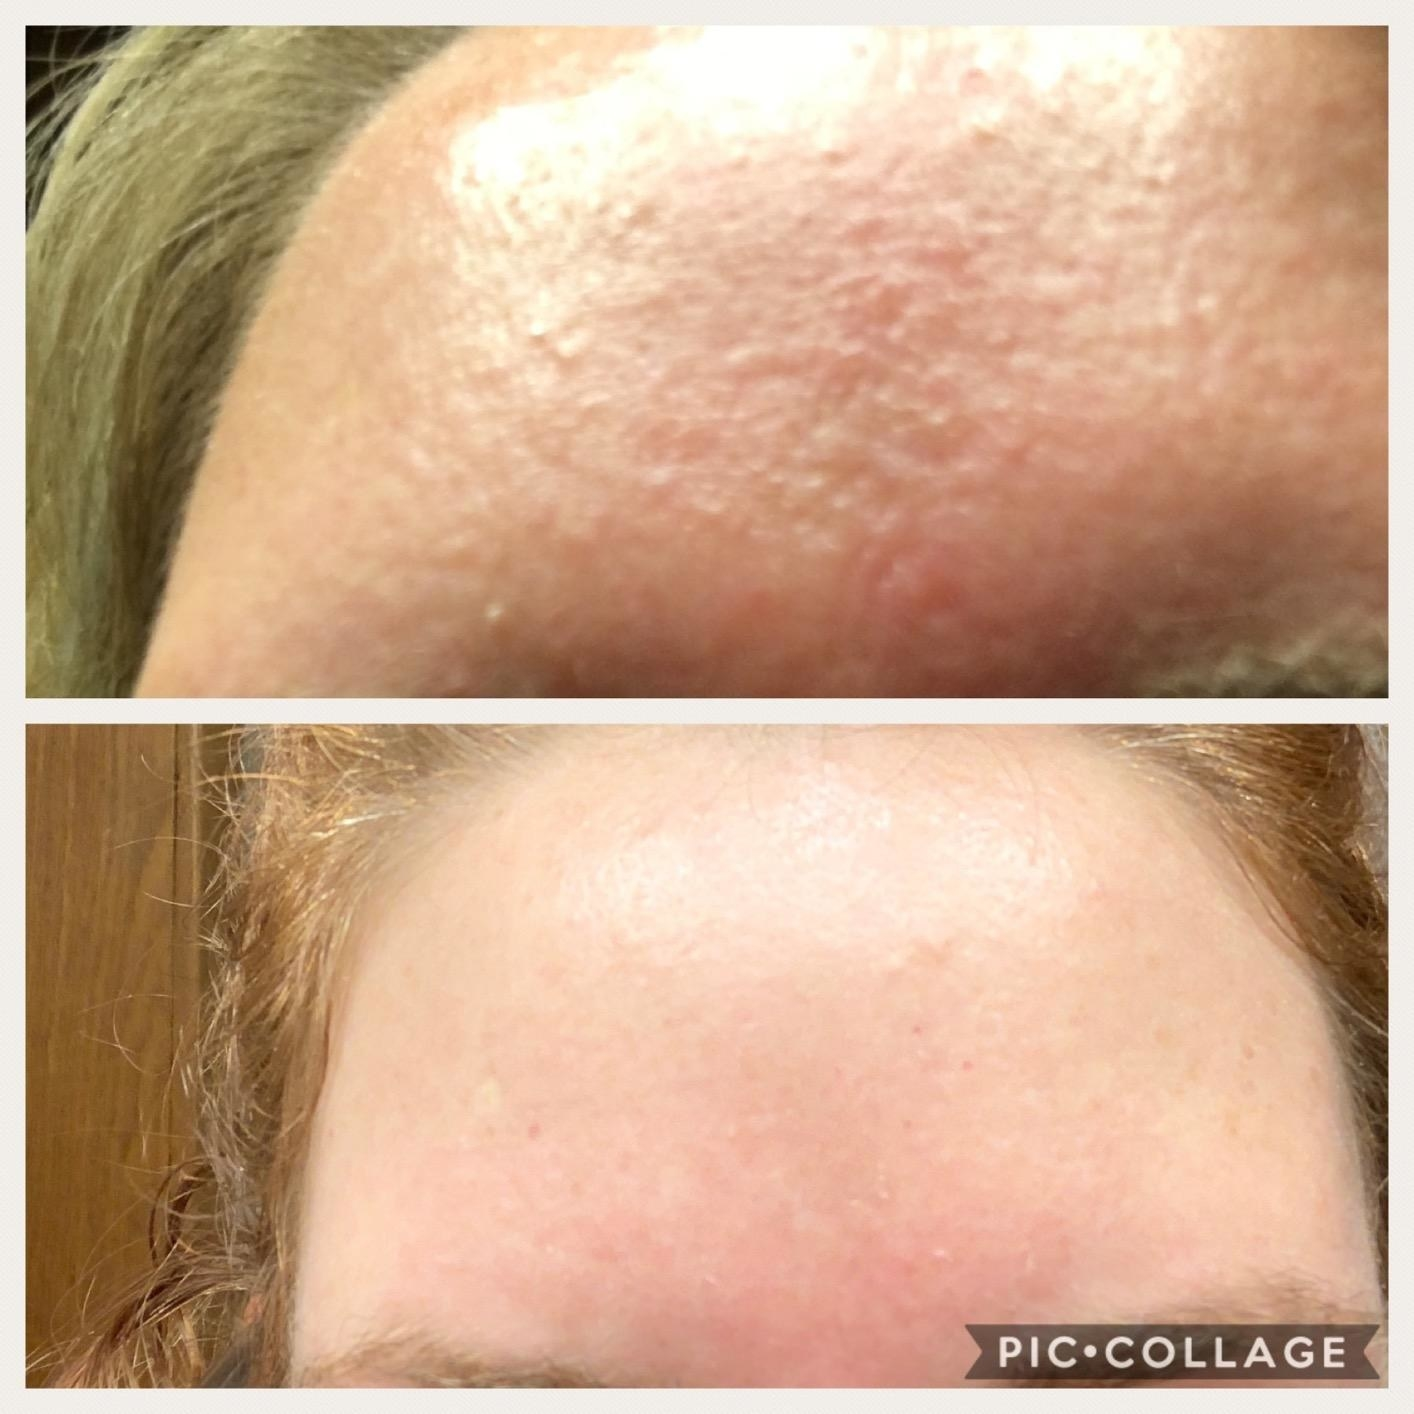 A reviewer before and after photo with the top image showing a forehead covered in fungal acne and the bottom image showing the same forehead cleared of acne